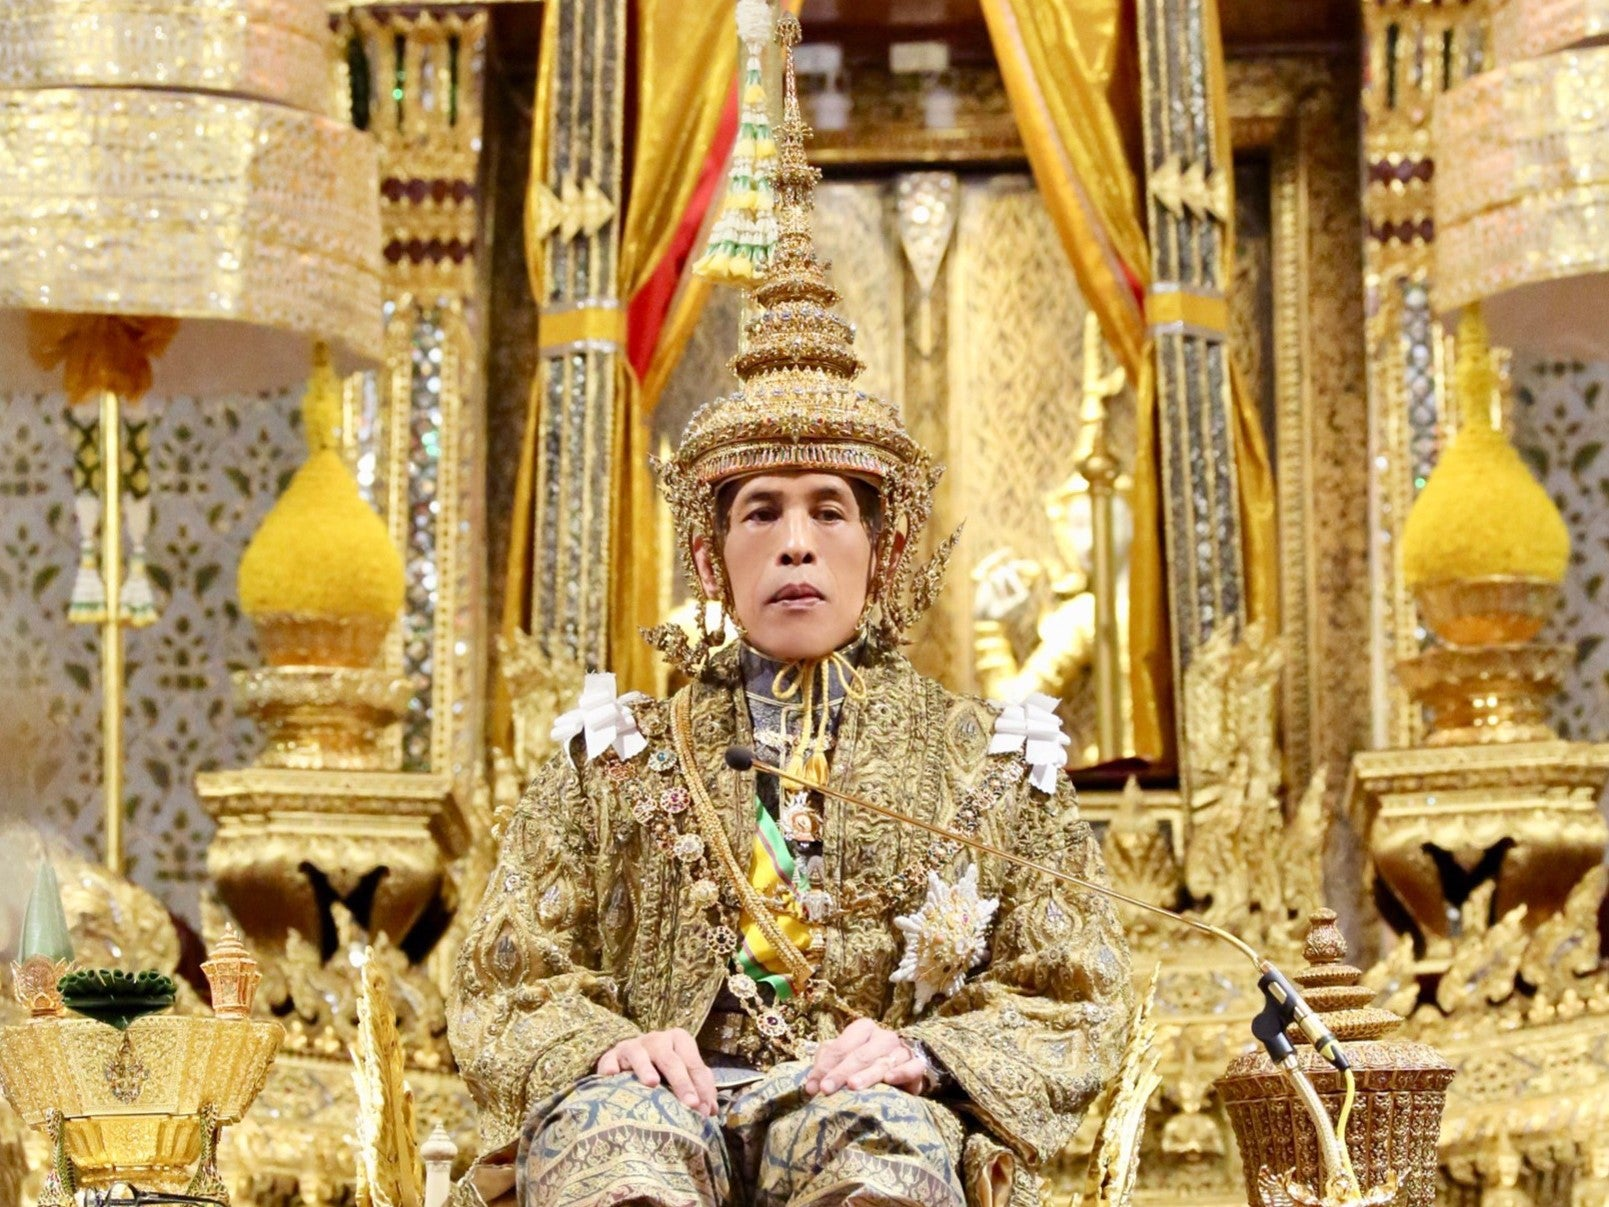 Thai King Vajiralongkorn crowned at start of three day ceremony which transforms him into living god